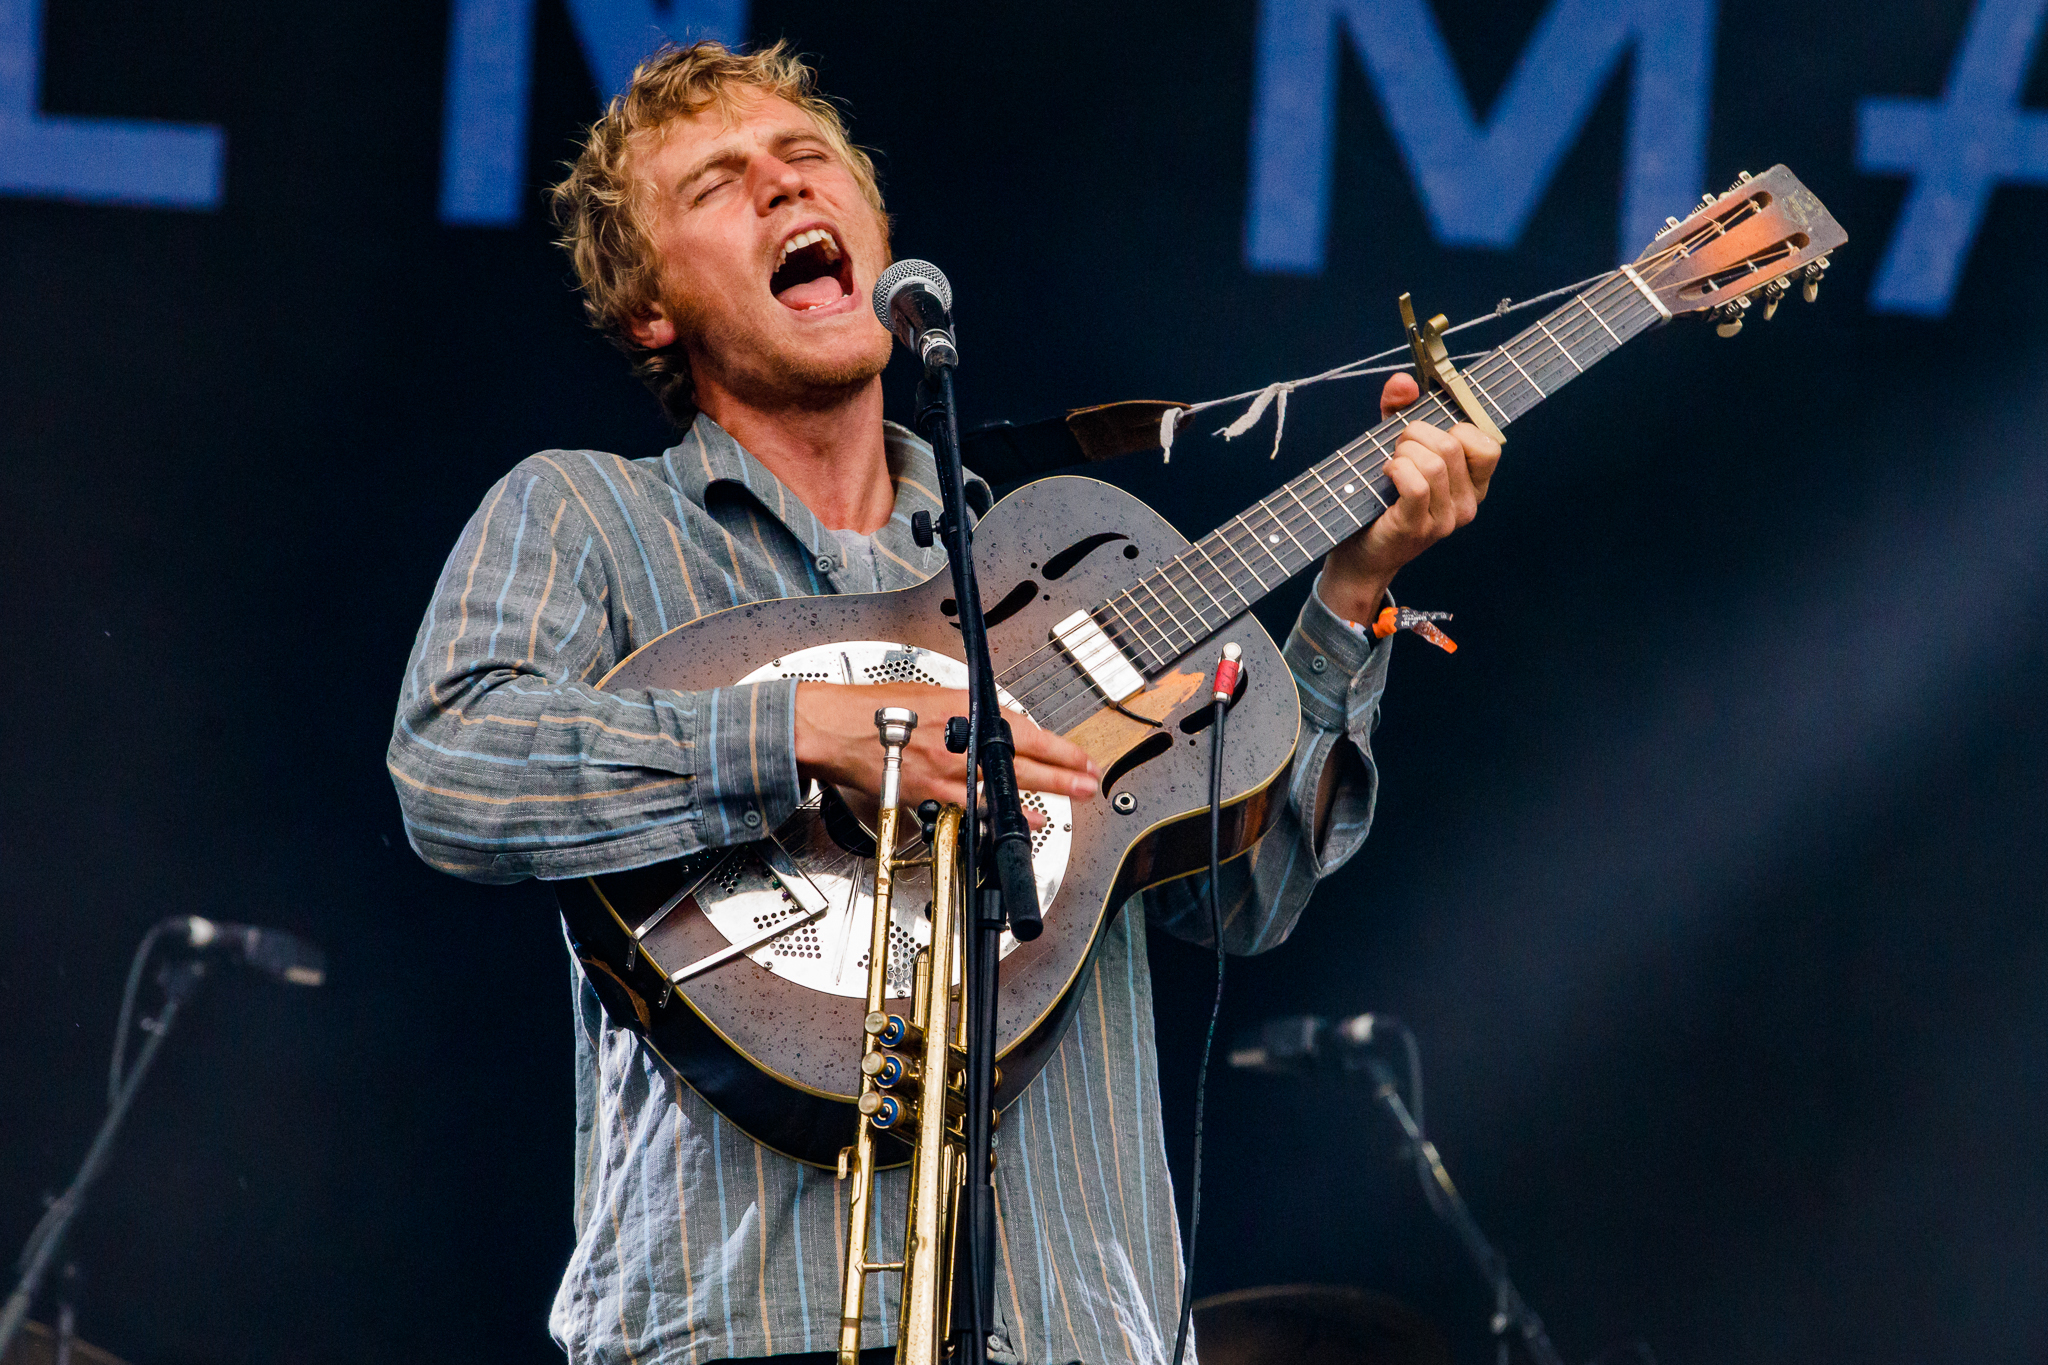 Johnny Flynn @ Green Man Festival (Brecon Beacons, Wales)